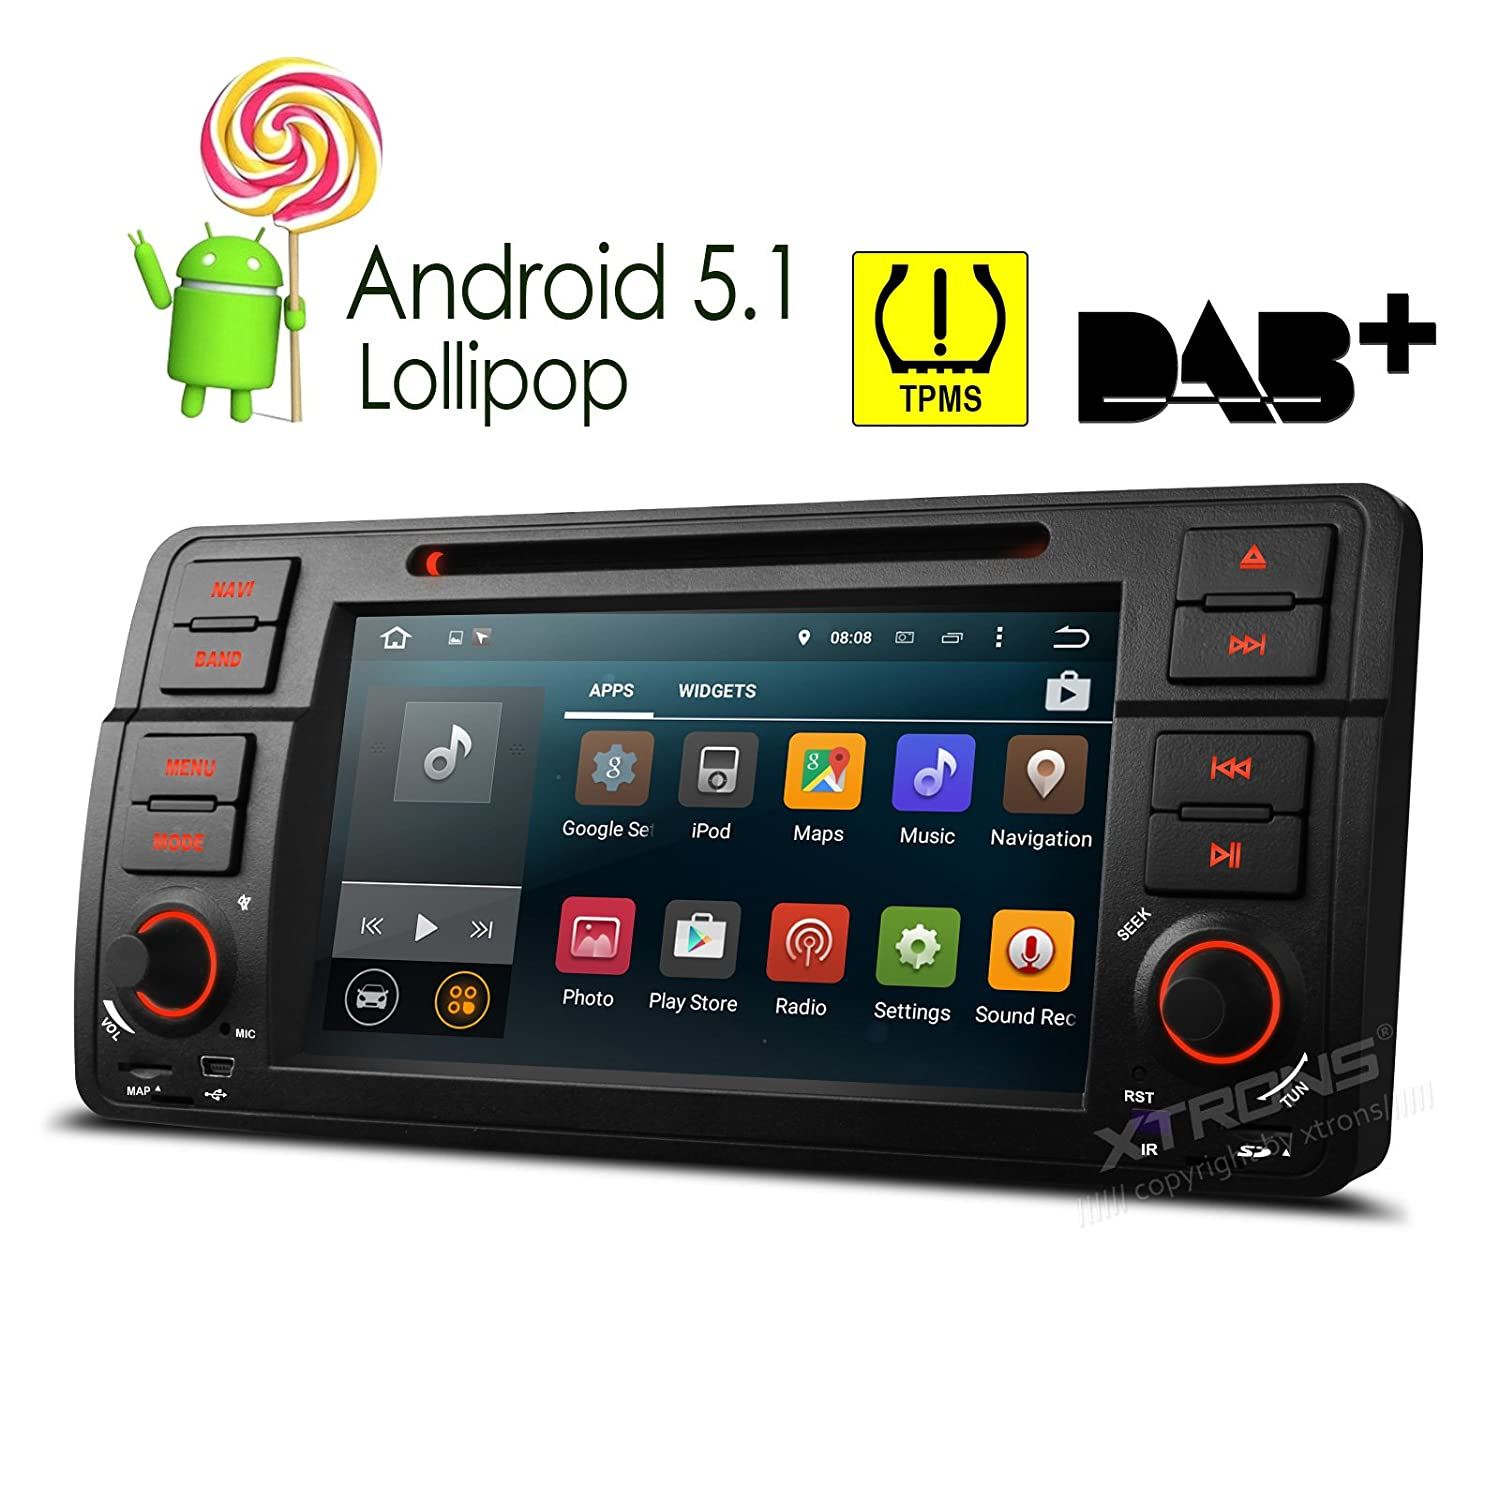 "Amazon.com: XTRONS Quad Core 7"" Android 5.1 Lollipop Car Stereo Multi-touch  Screen Radio CD DVD Player GPS 1080P Video Screen Mirroring OBD2 Wifi  CANbus ..."